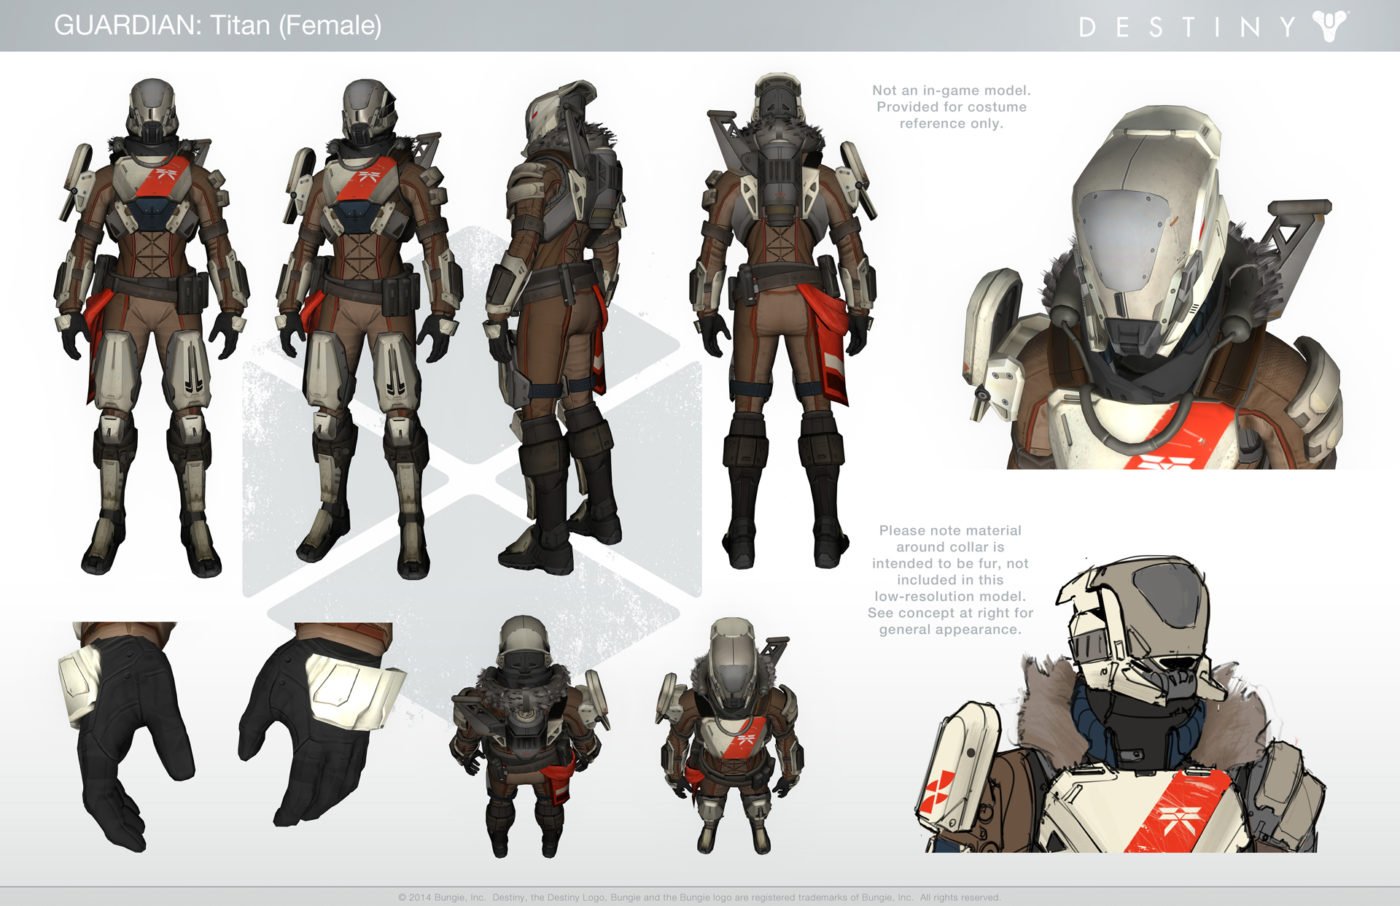 Dress Up As Your Favorite Guardian With This Handy Destiny